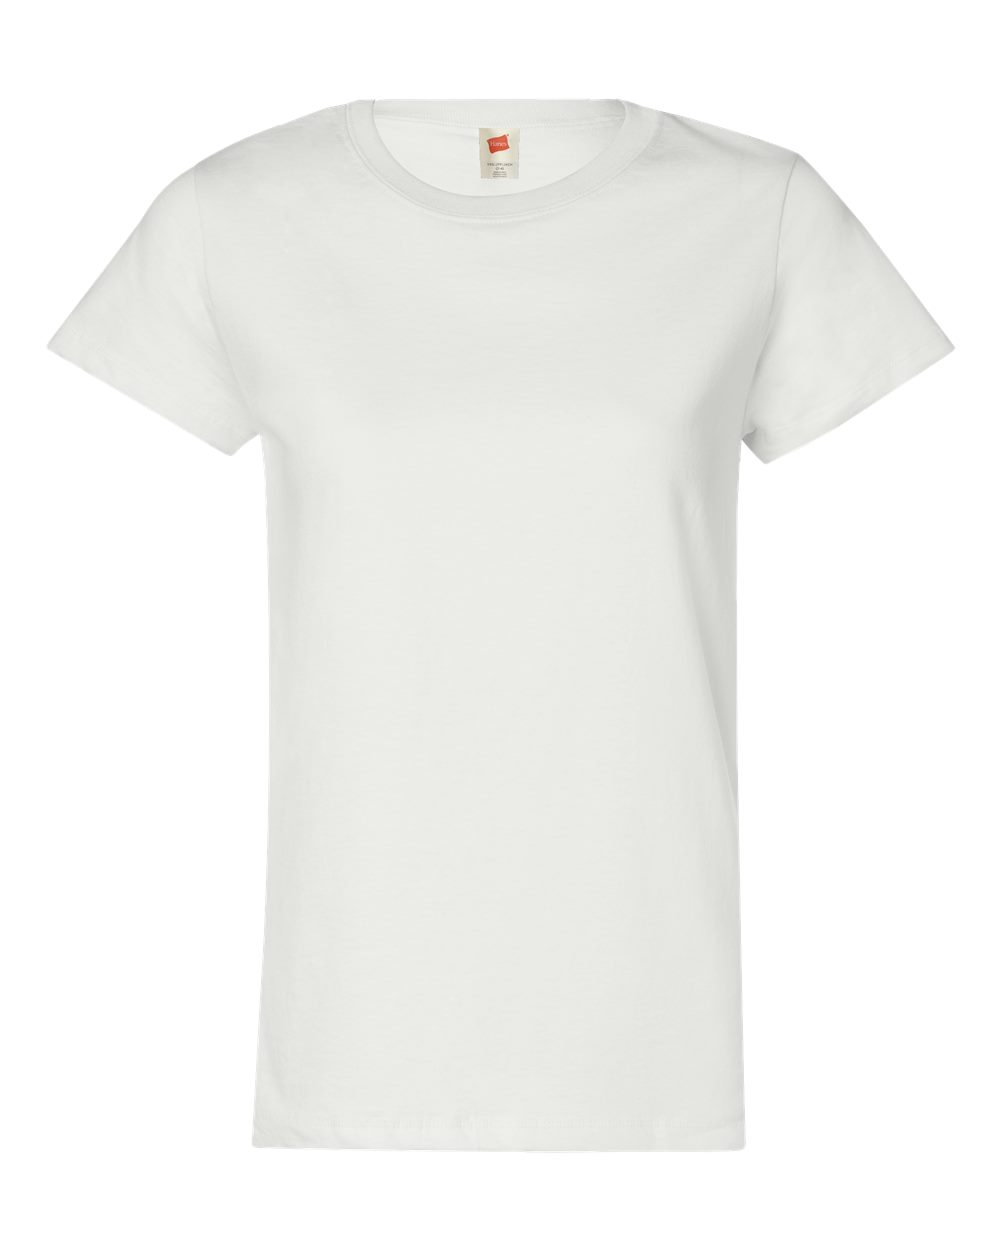 ComfortSoft?? Women???s Short Sleeve T-Shirt-ComfortWash by Hanes